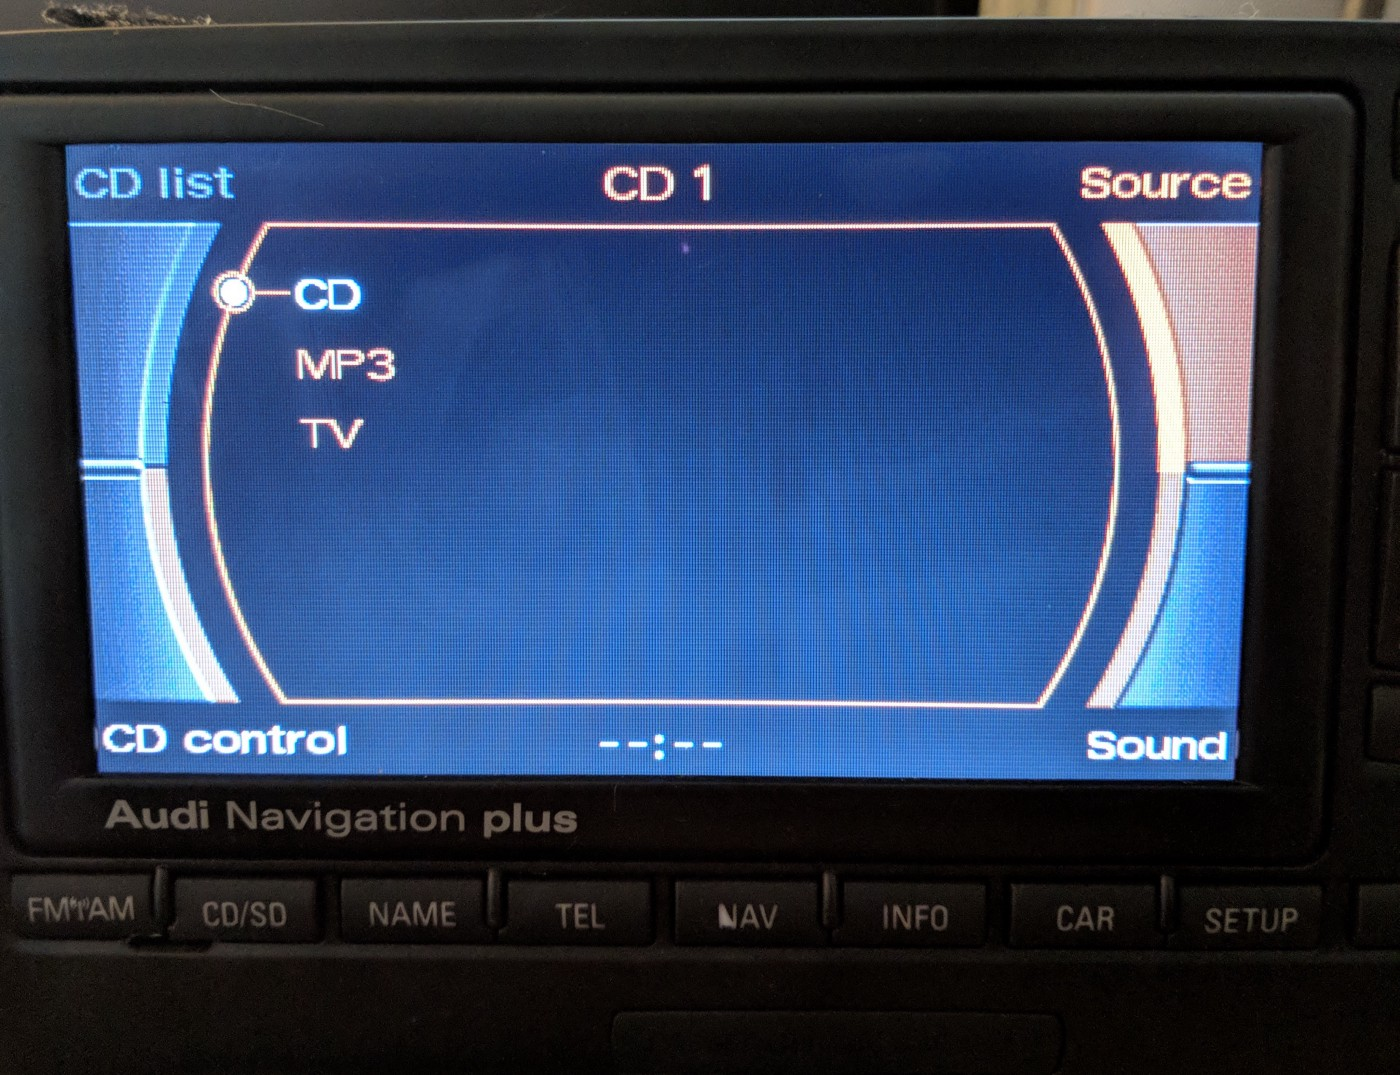 Bringing Android Auto to Audi Navigation Plus (RNS-E) using a